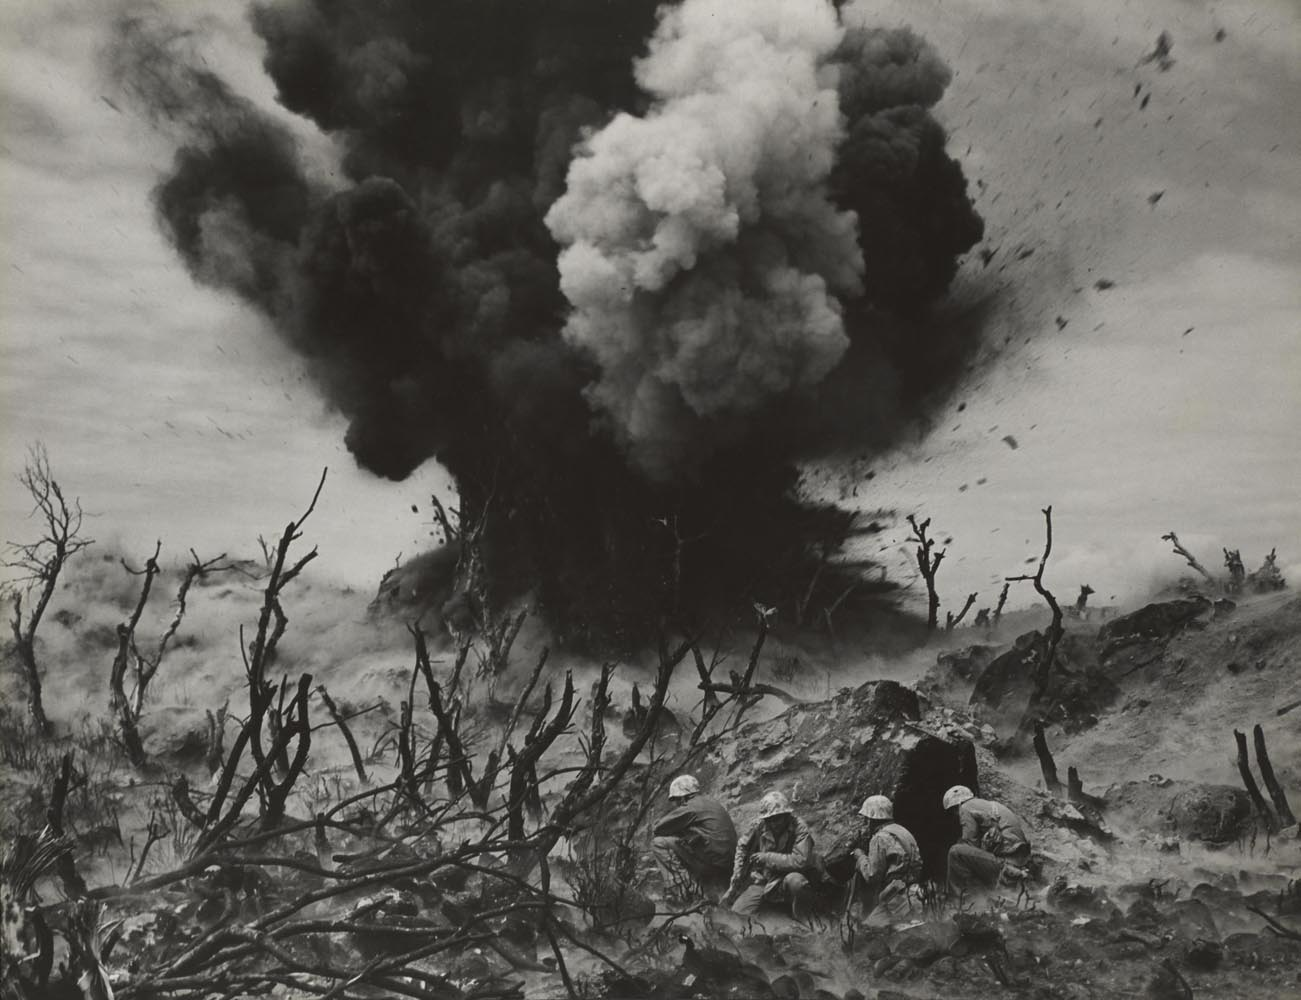 Marine Demolition Team Blasting Out a Cave on Hill 382, Iwo Jima, from the photo-essay Iwo Jima                               1945                               W. Eugene Smith, American, 1918-1978